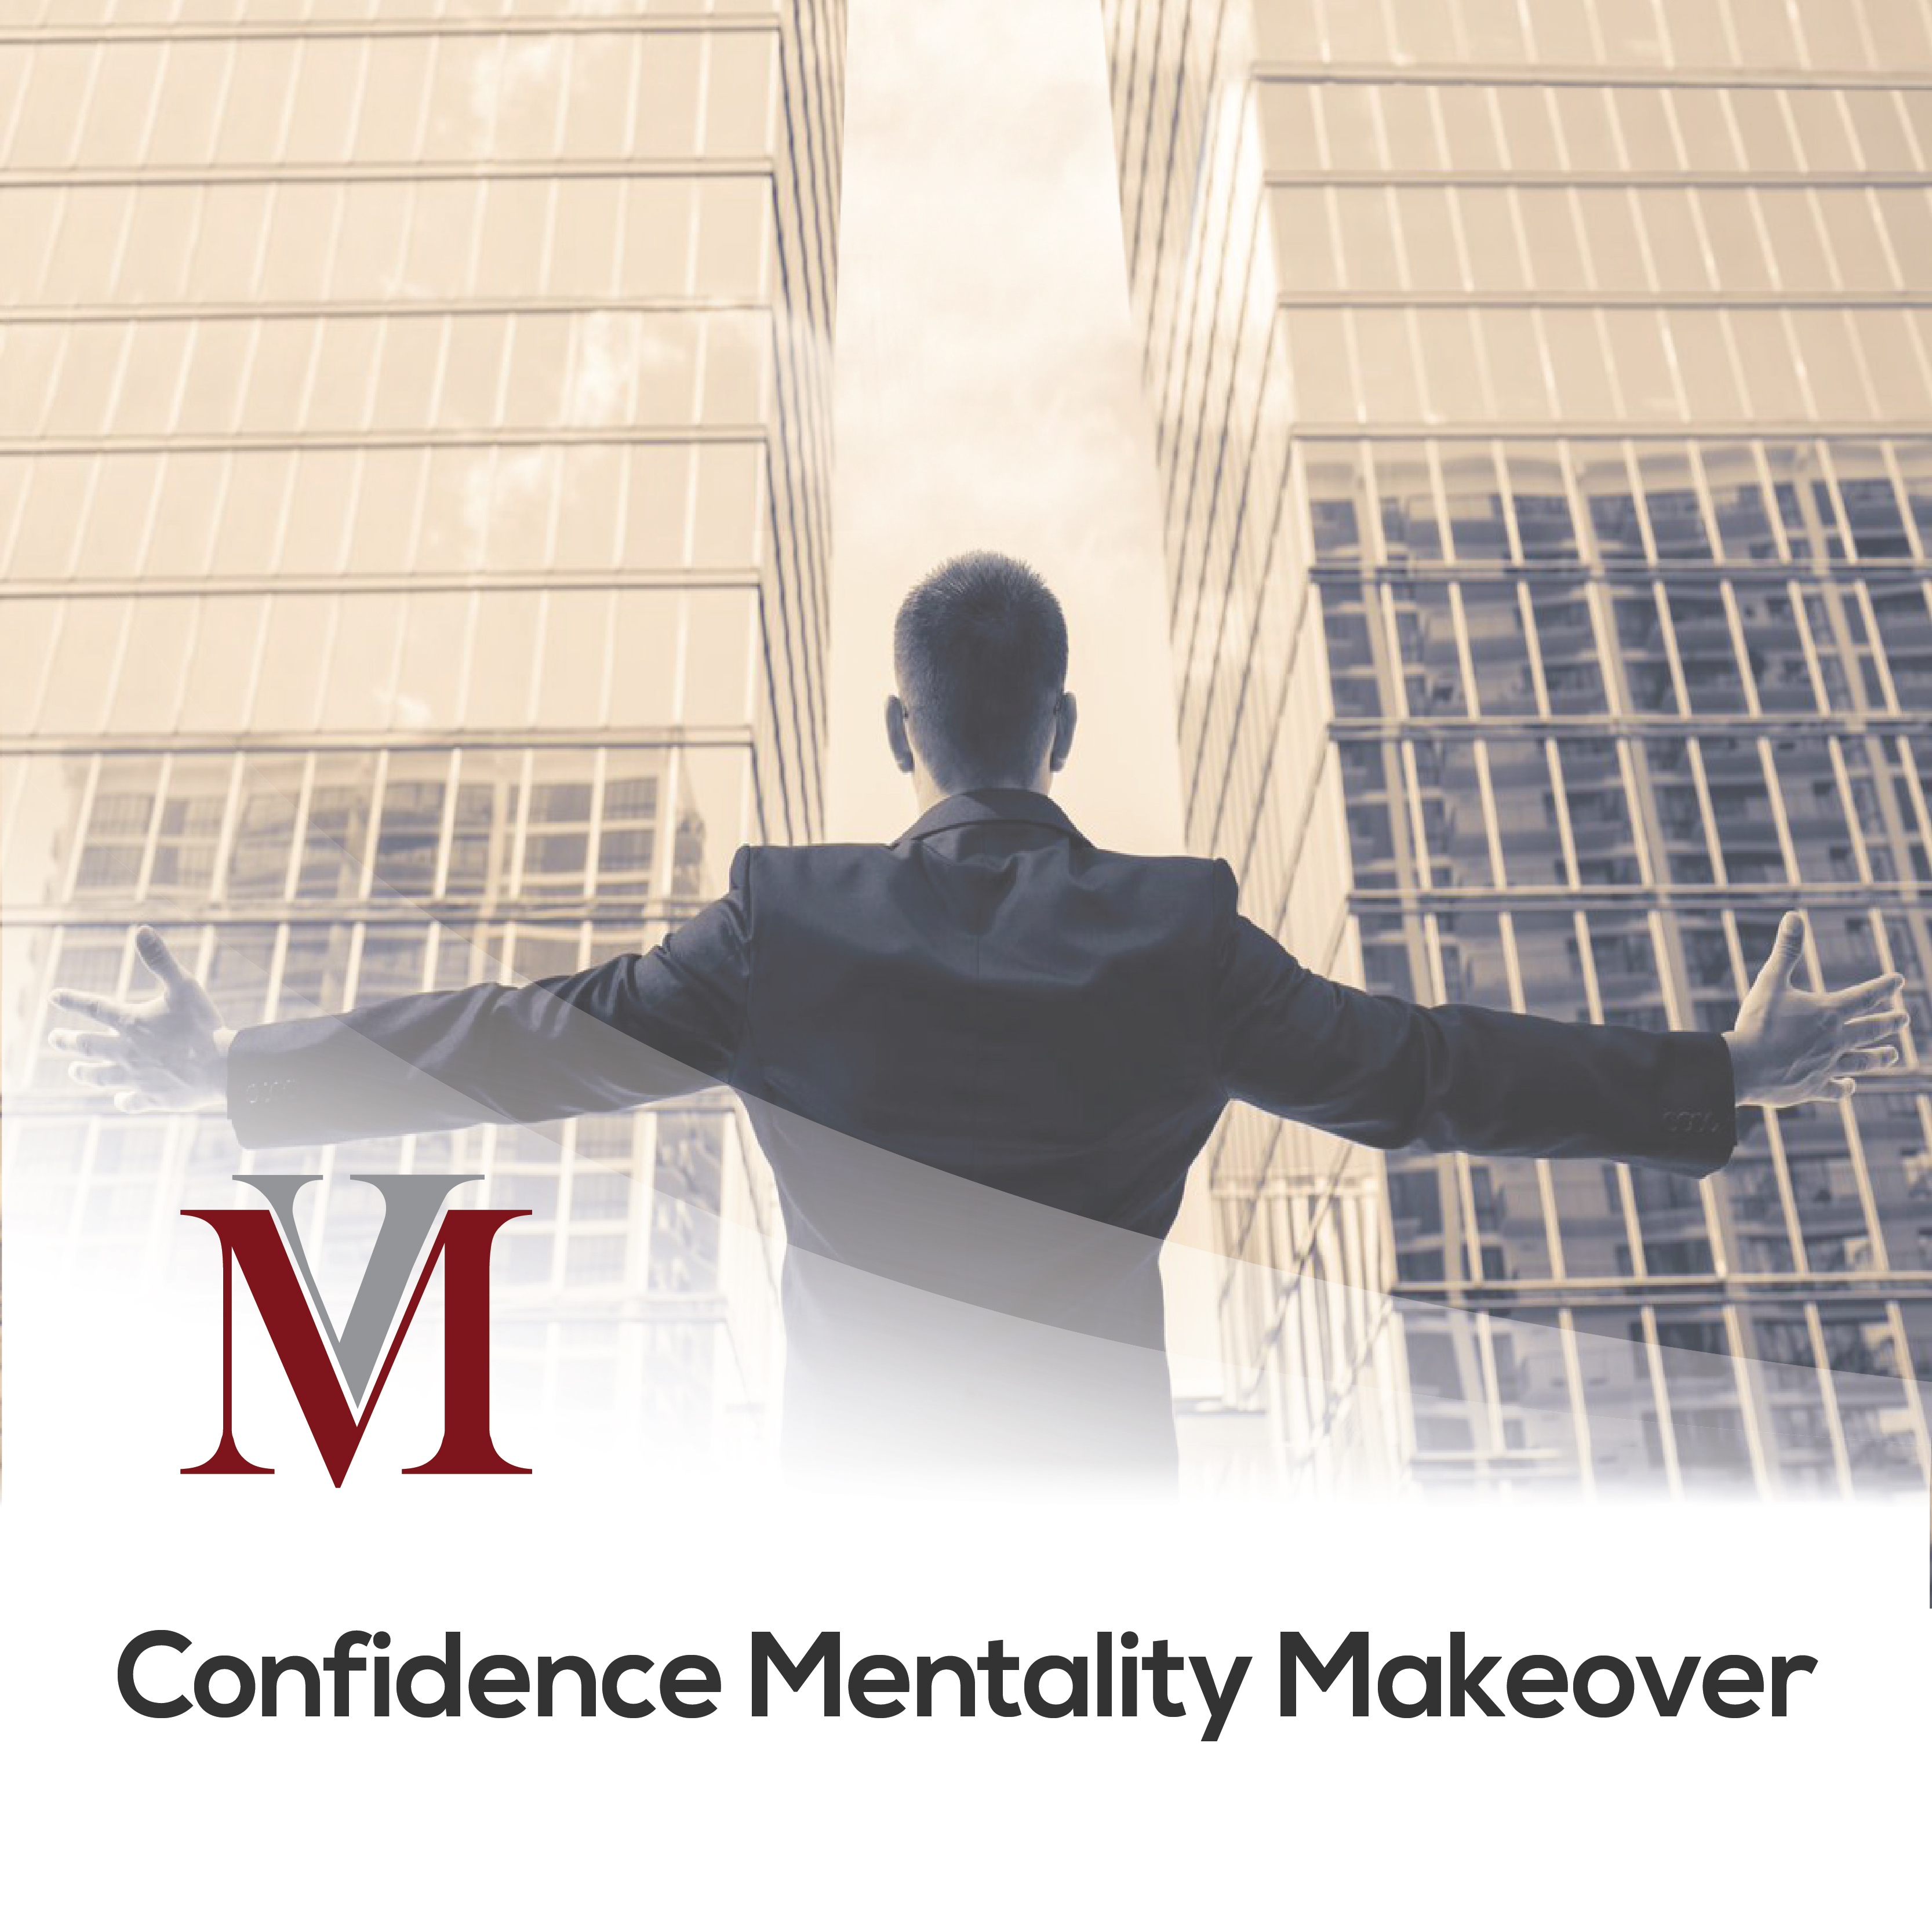 Confidence Mentality Makeover